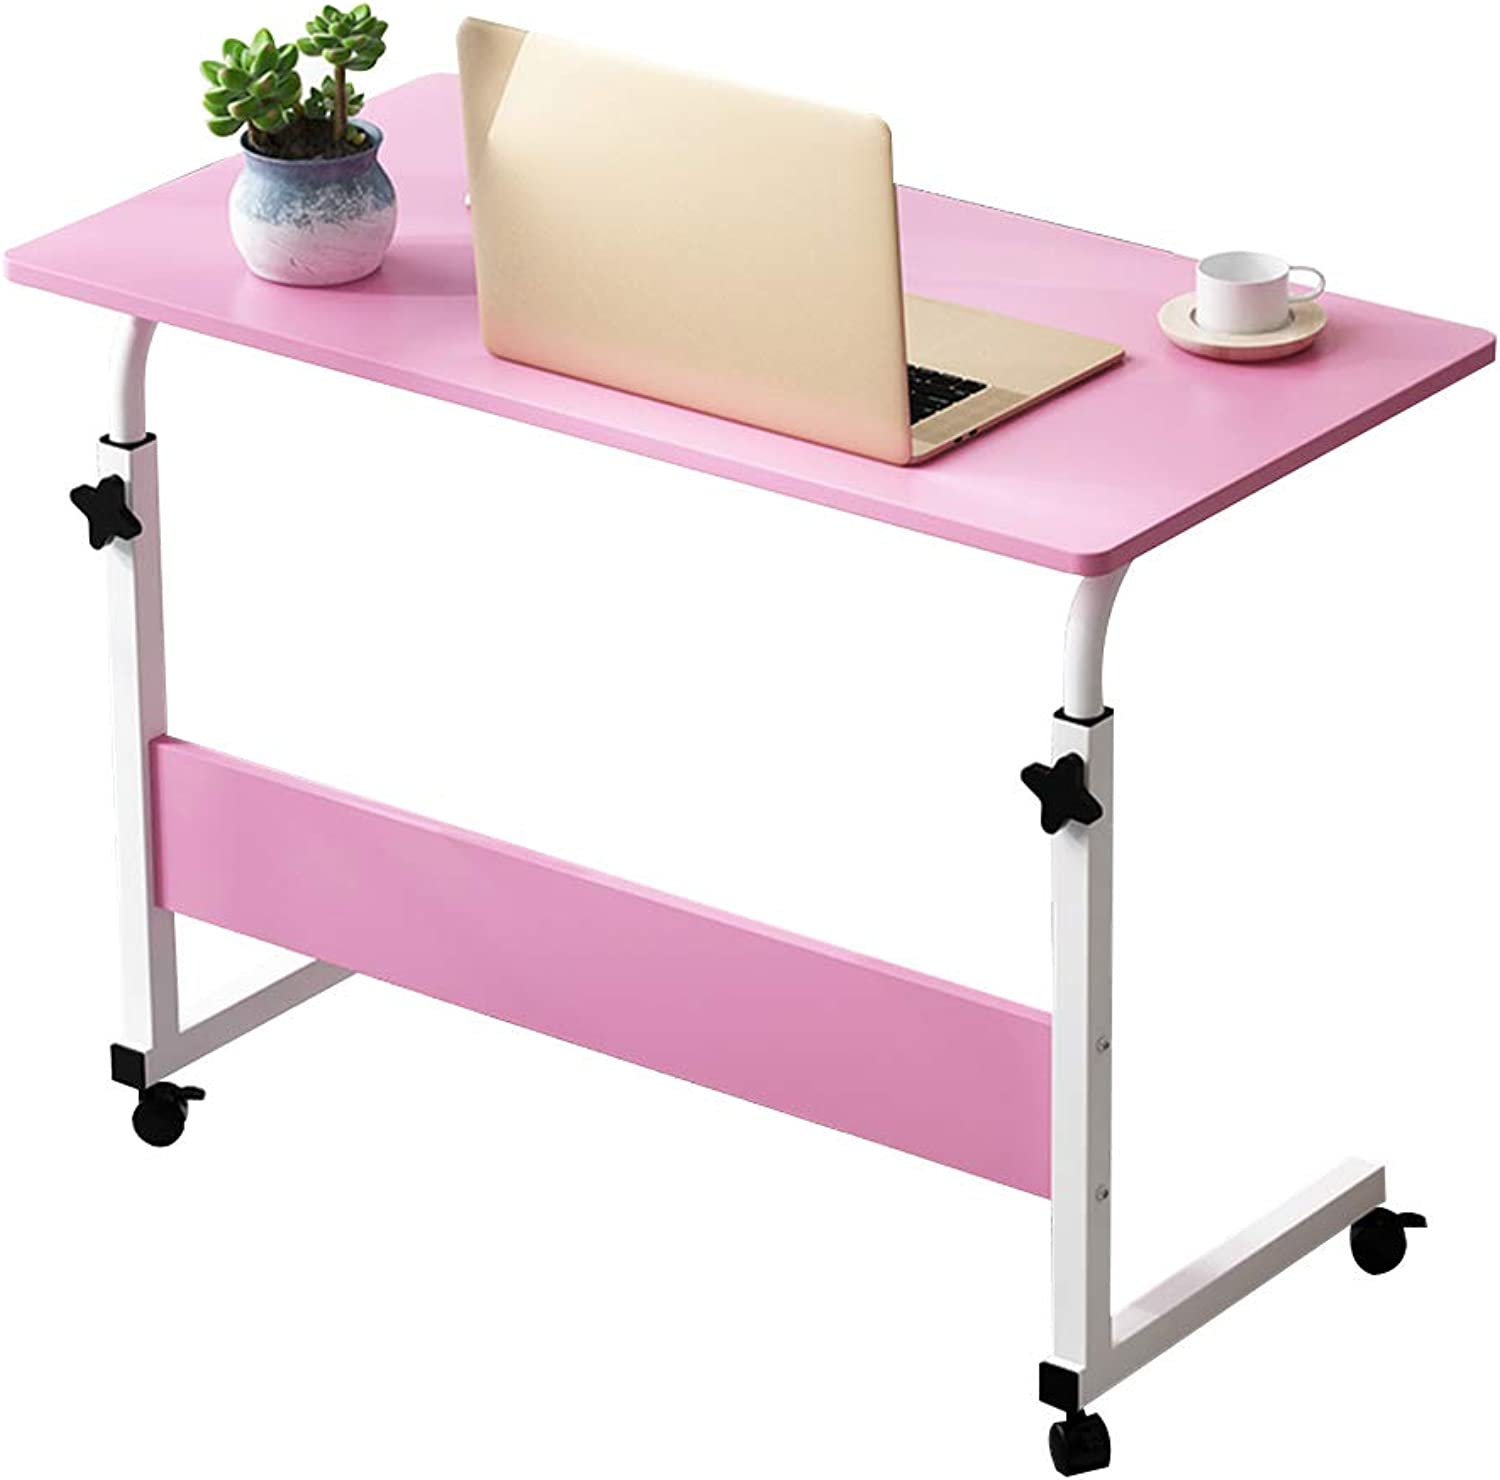 Coffee Table Type C Mobile Telescopic Tables,Lifting Side Notebook Writing Desk Household Bedside Nursing Table, 3 Sizes (Size   60  40 cm)